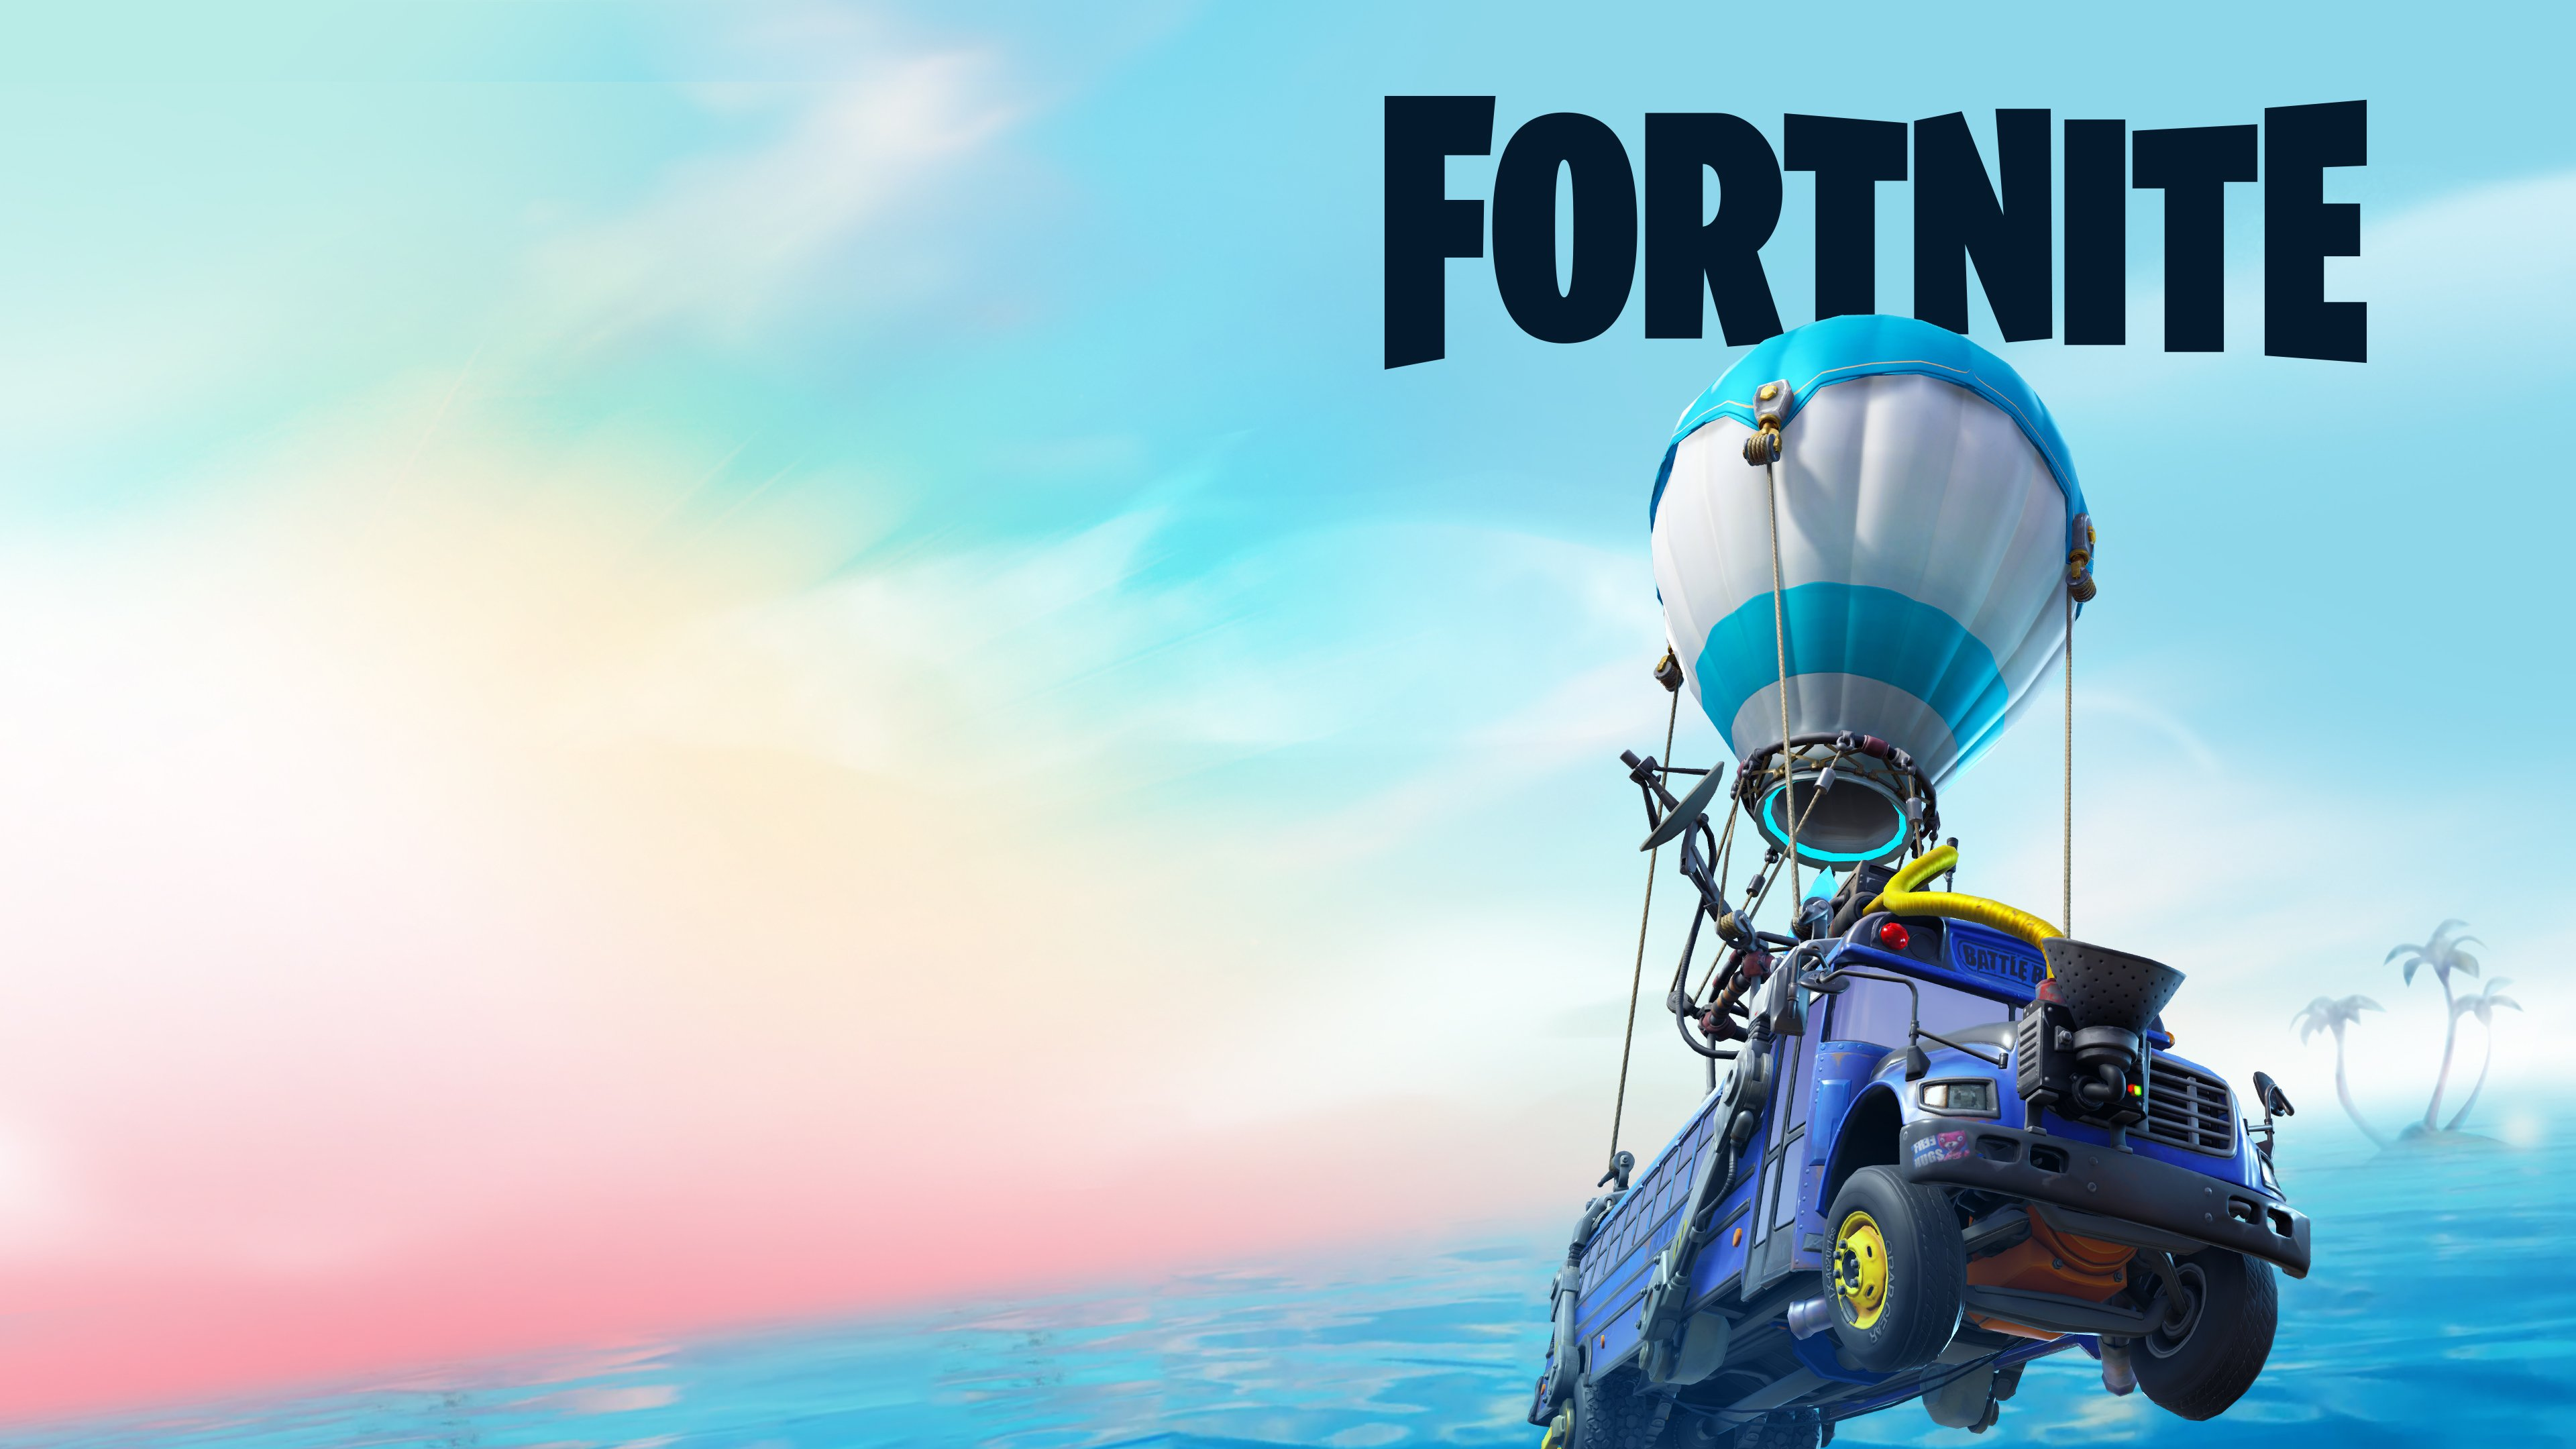 Fortnite New Chapter 2 - Season 3 PS4 Icon Leaked